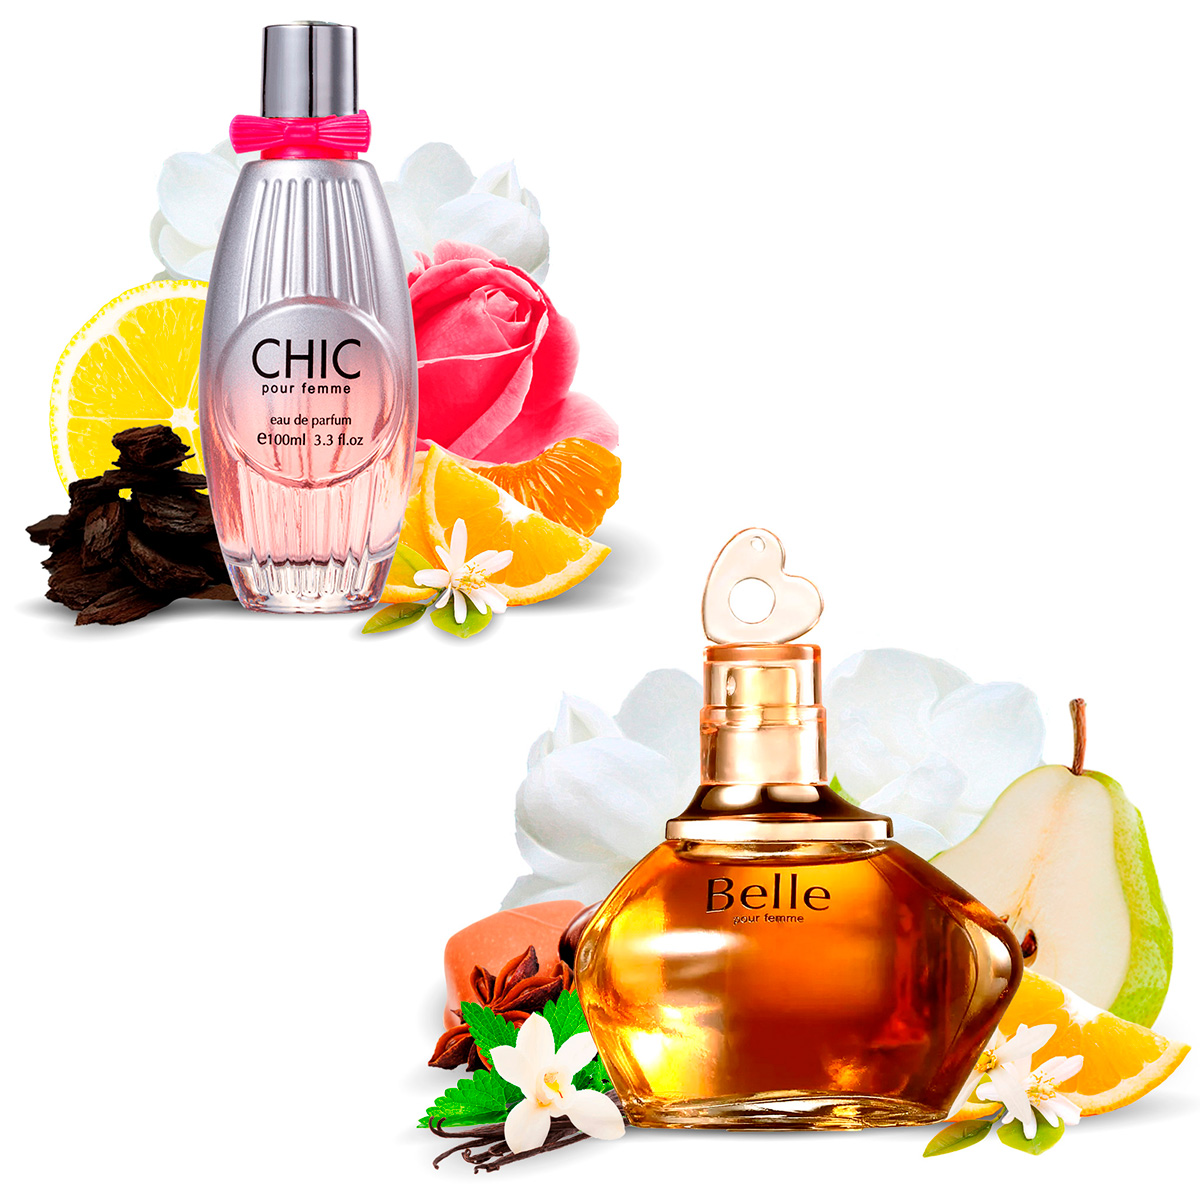 Kit 2 Perfumes Importados Chic e Belle I Scents